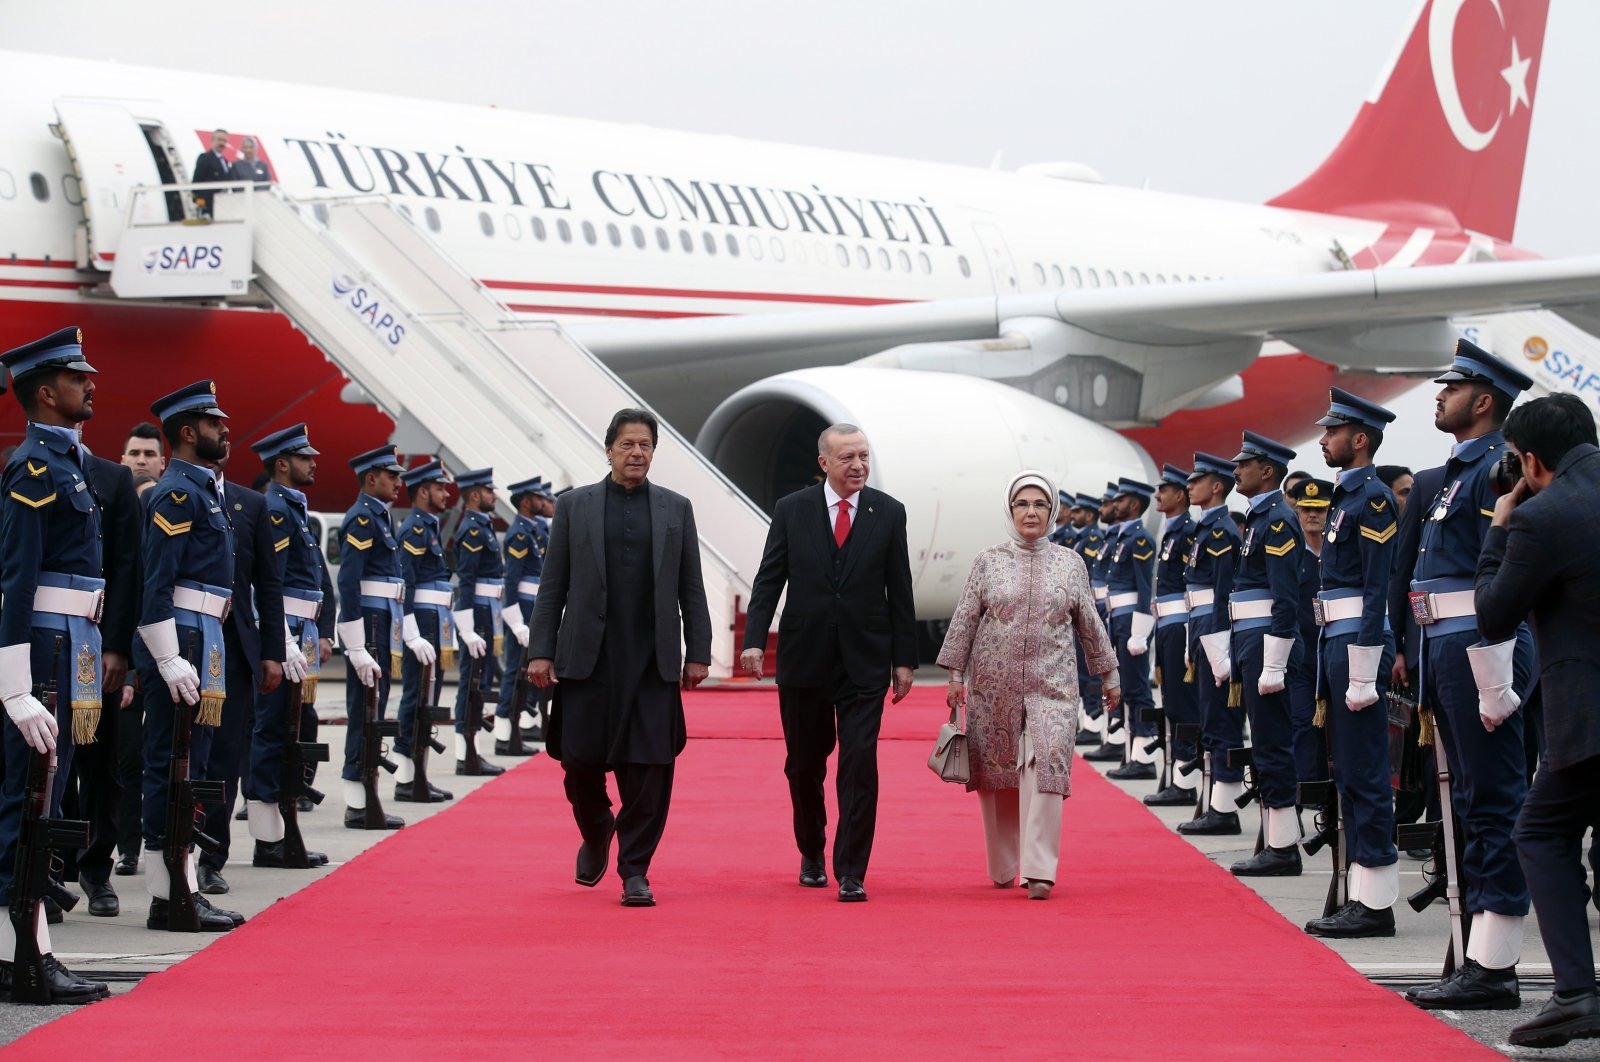 Pakistan's Prime Minister Imran Khan (L), President Recep Tayyip Erdoğan (C) and first lady Emine Erdoğan review a military honor guard during a welcome ceremony at the Nur Khan air base, in Rawalpindi, Pakistan, Feb. 13, 2020. (AP Photo)